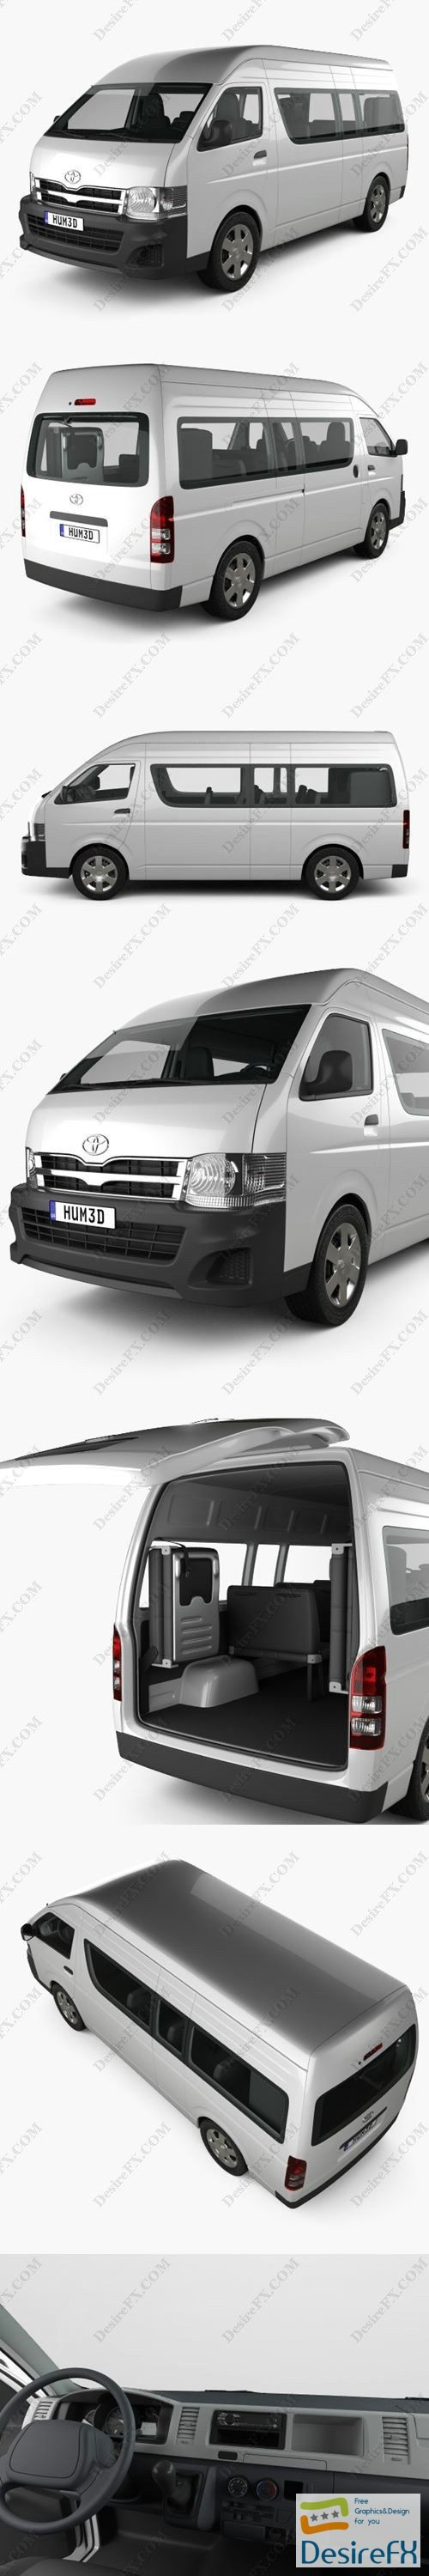 3d-models - Toyota HiAce Super Long Wheel Base with HQ interior 2012 3D Model